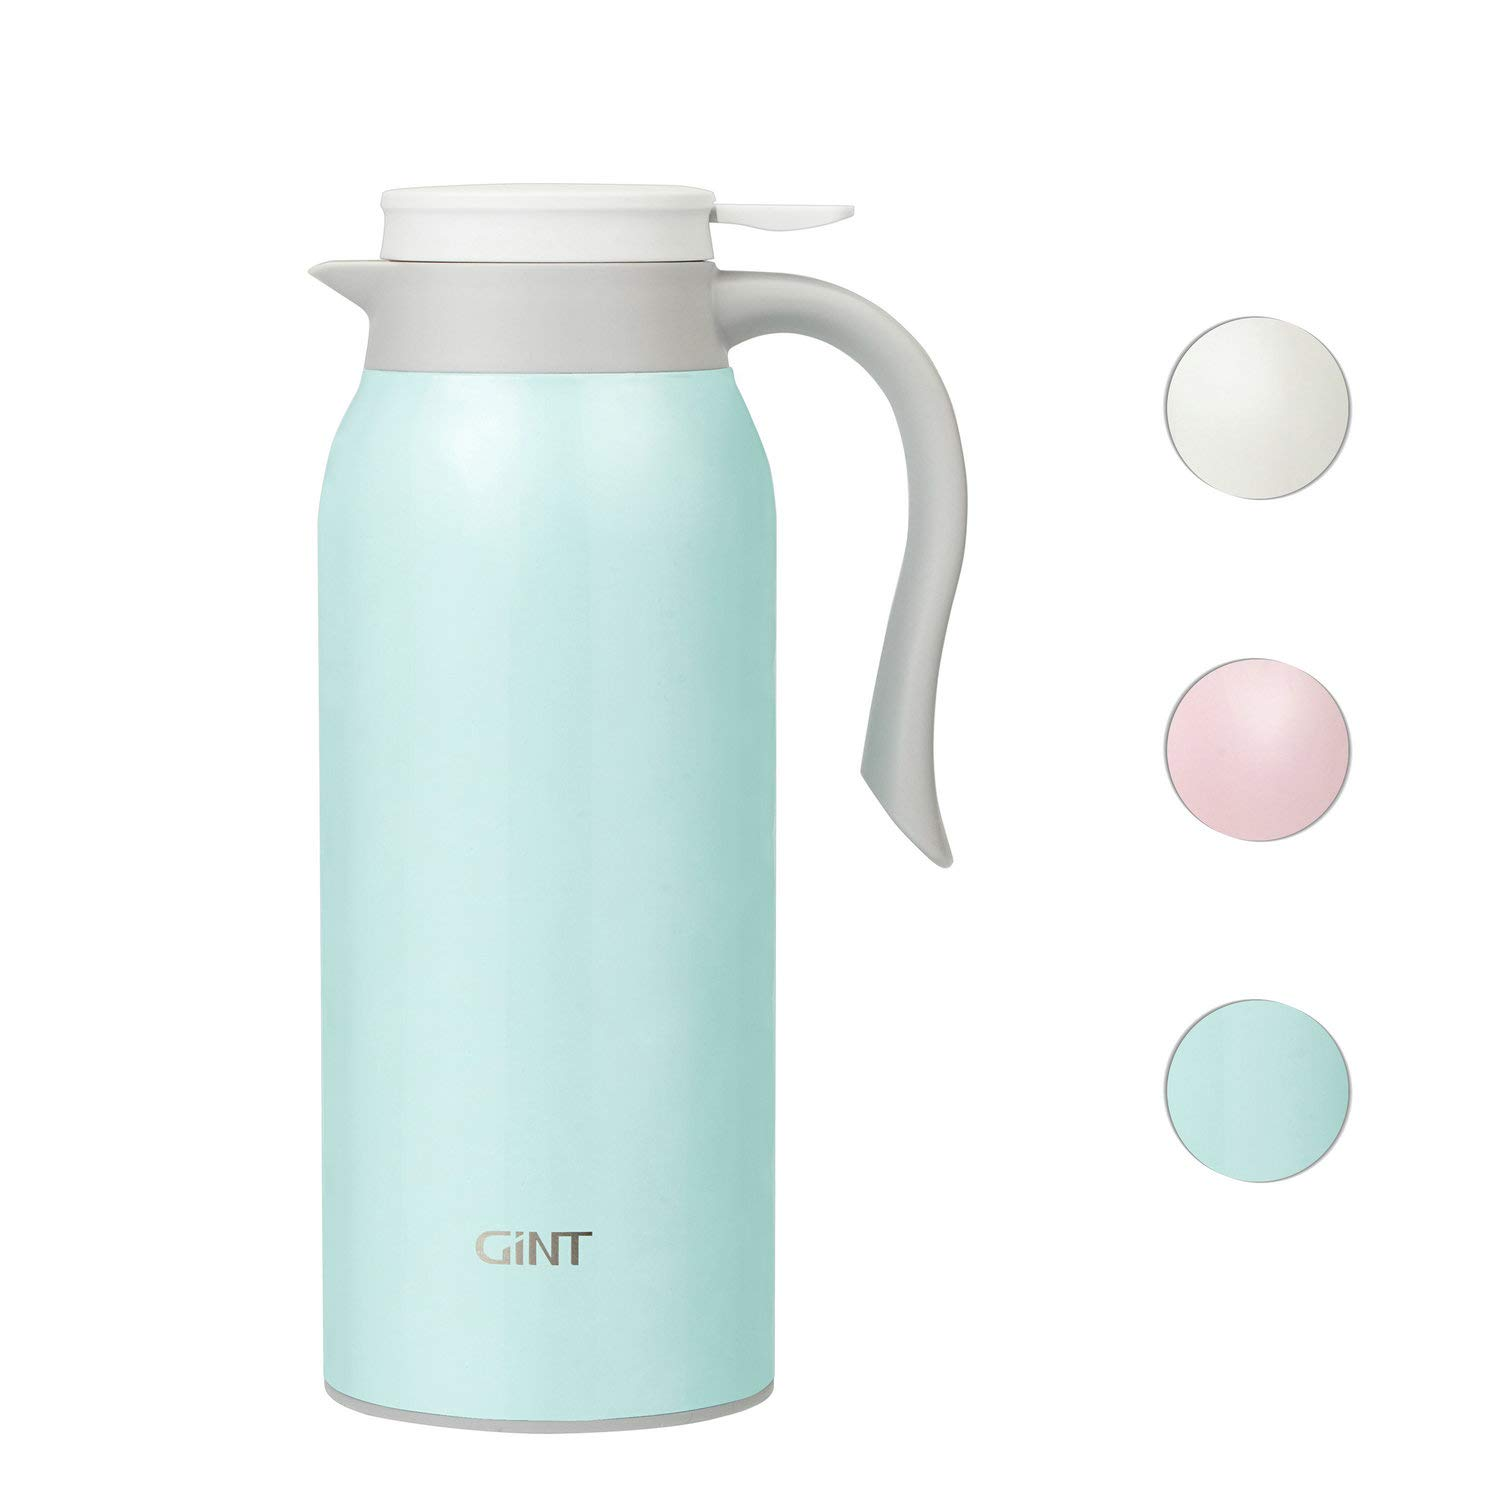 GiNT 51 Oz Stainless Steel Thermal Coffee Carafe, Double Walled Vacuum Thermos, 12 Hour Heat Retention, 1.5 Liter Tea, Water, and Coffee Dispenser, Blue